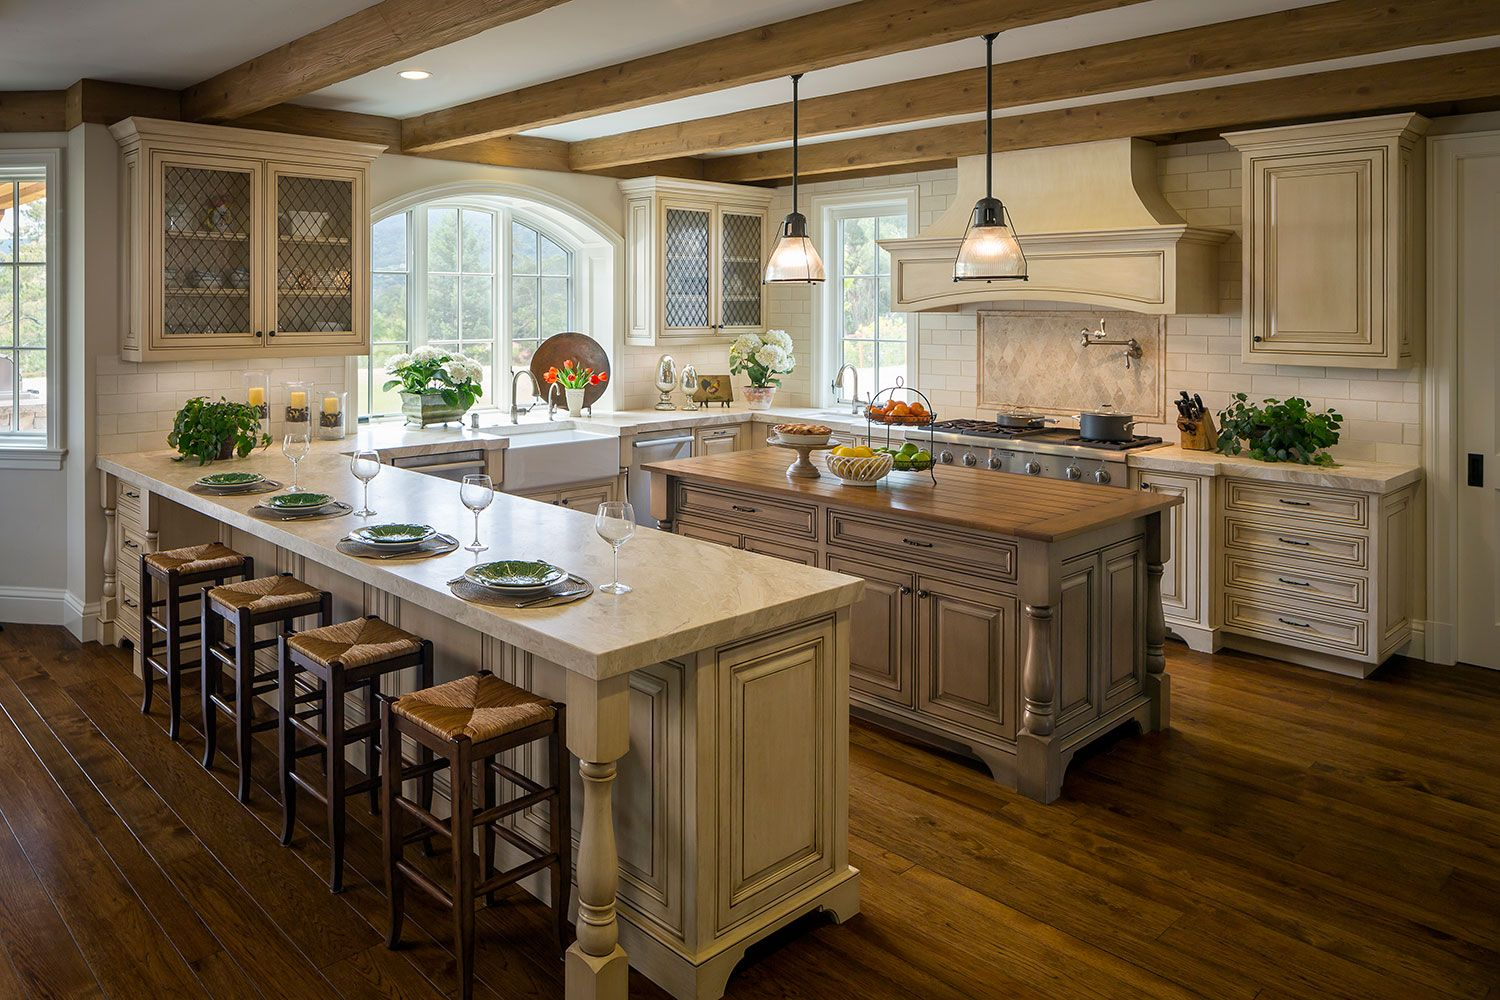 French country kitchen exposed beams subway tile cream cabinets